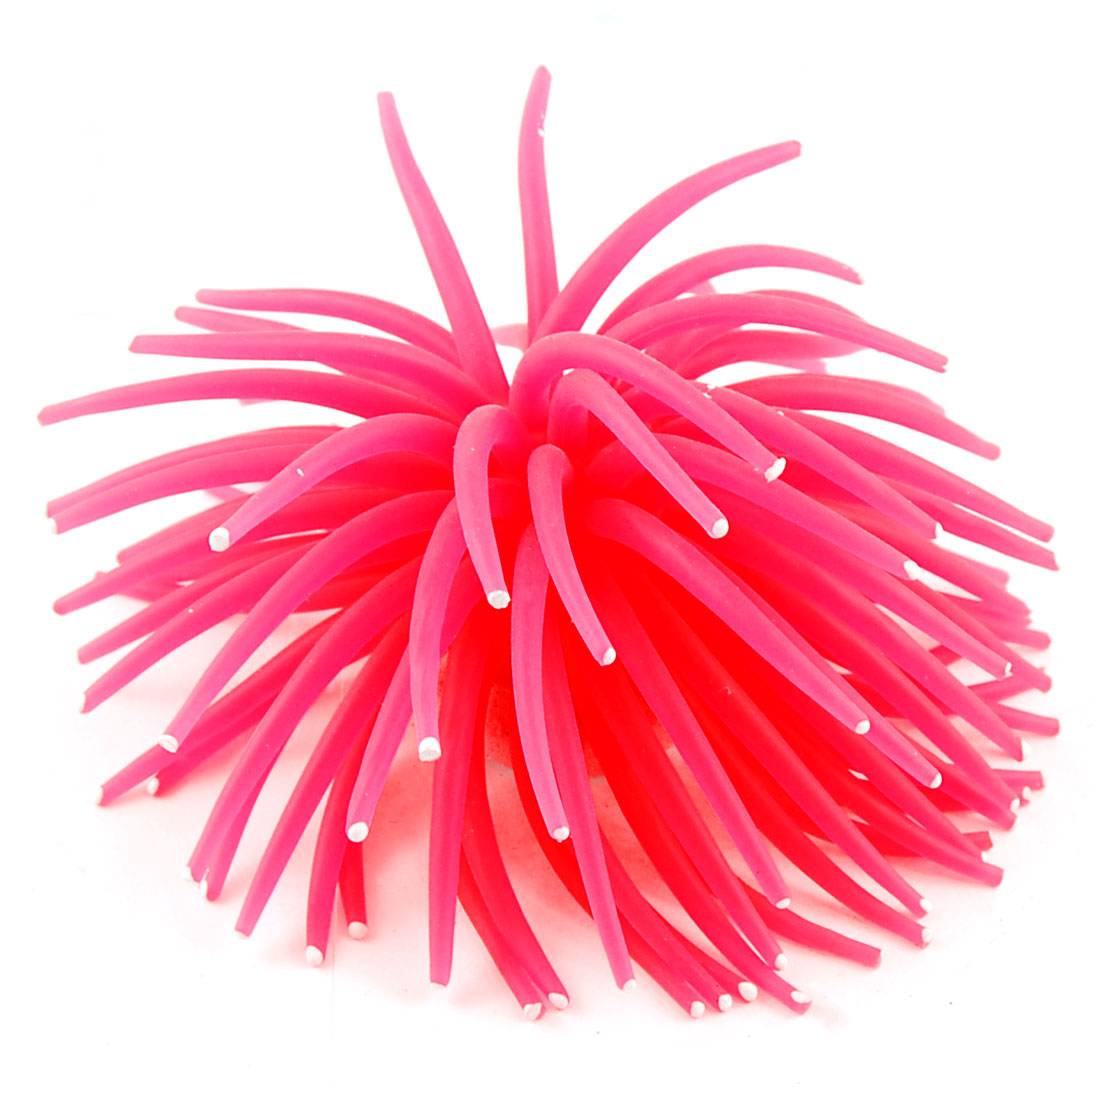 Aquarium Artificial Magenta Silicone Sea Anemone Ornament 5""